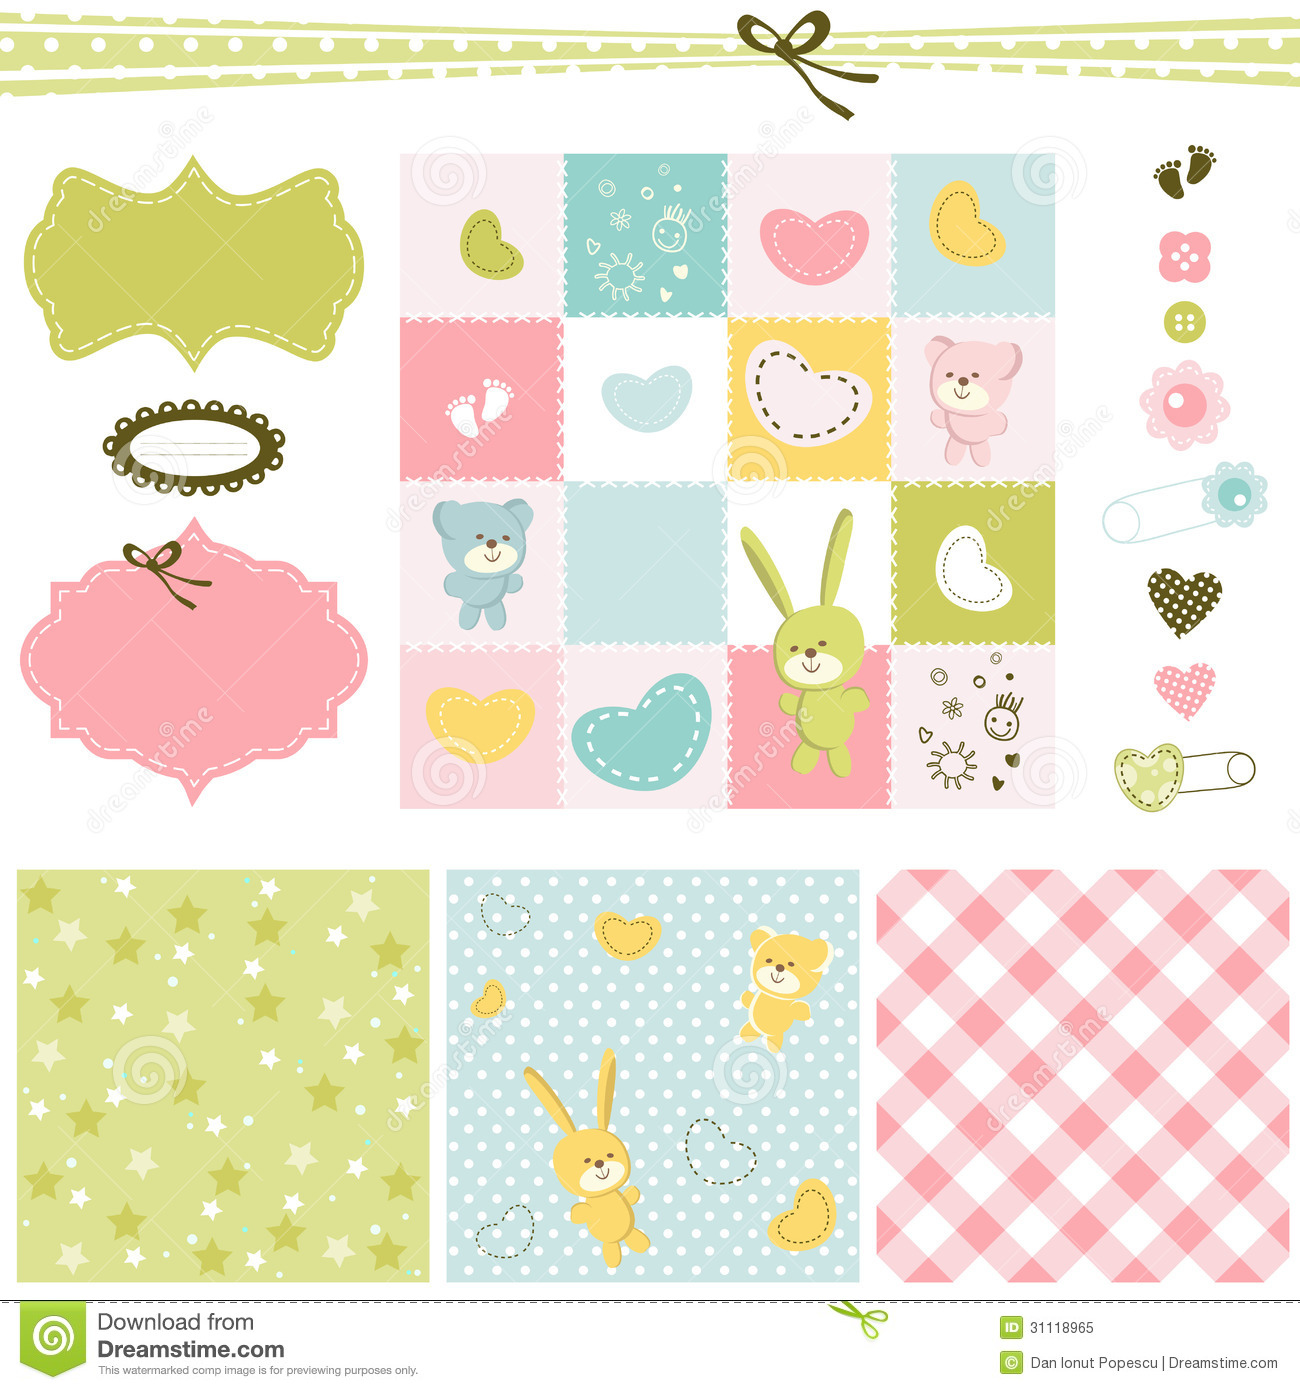 How to scrapbook for baby girl - Baby Girl Backgrounds Royalty Free Stock Photo